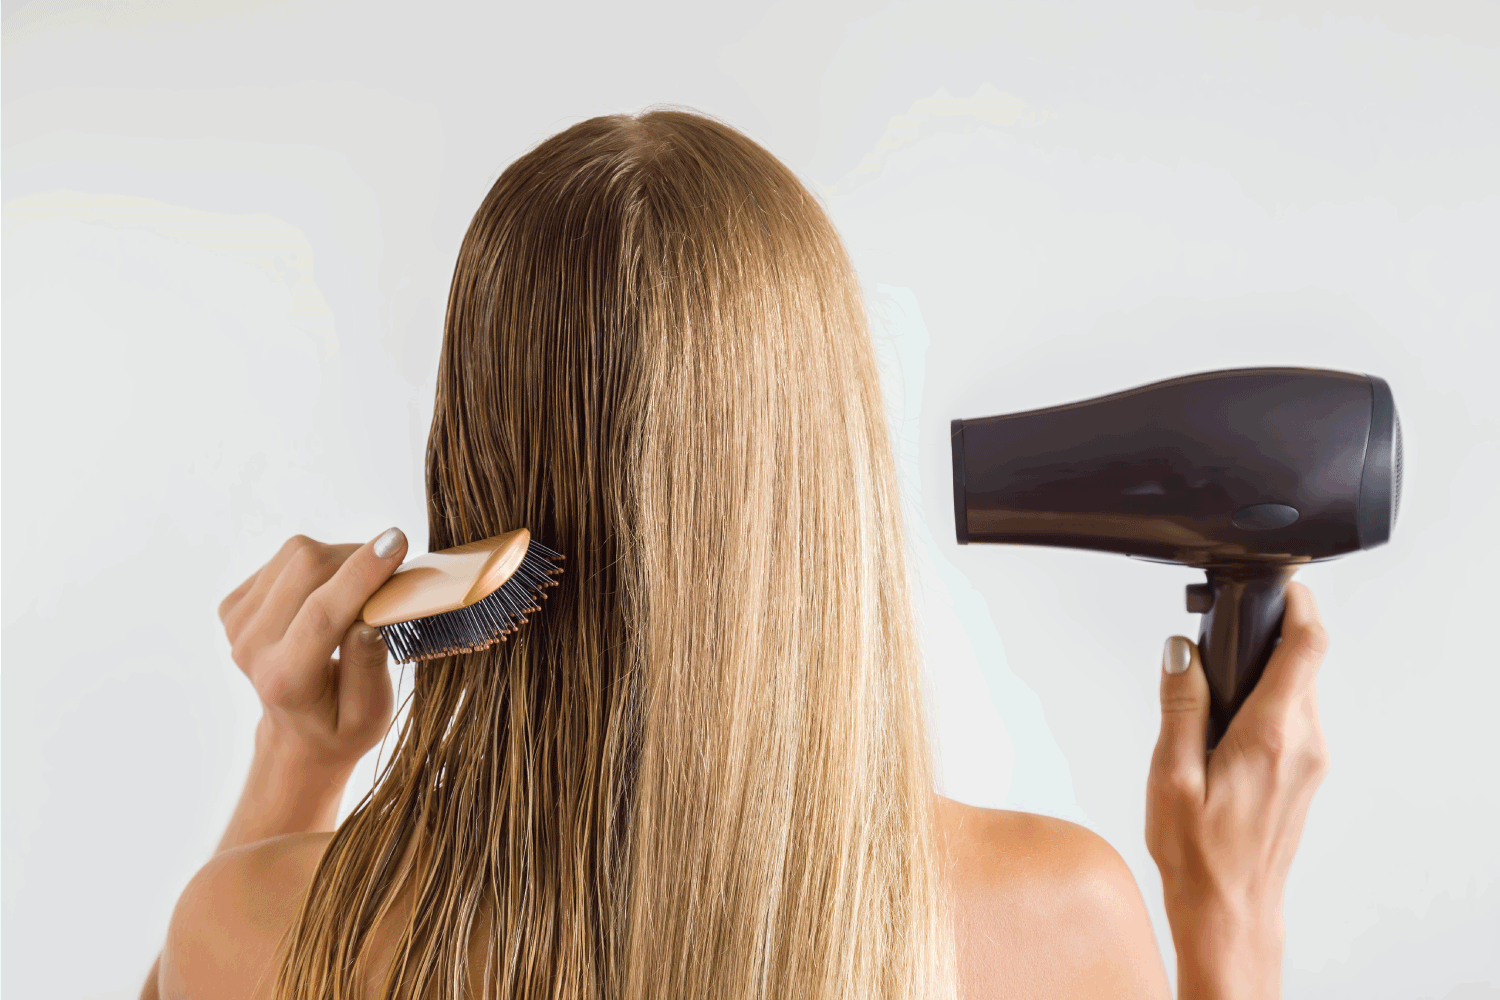 Wet and dry woman's blonde hair before and after using hair dryer